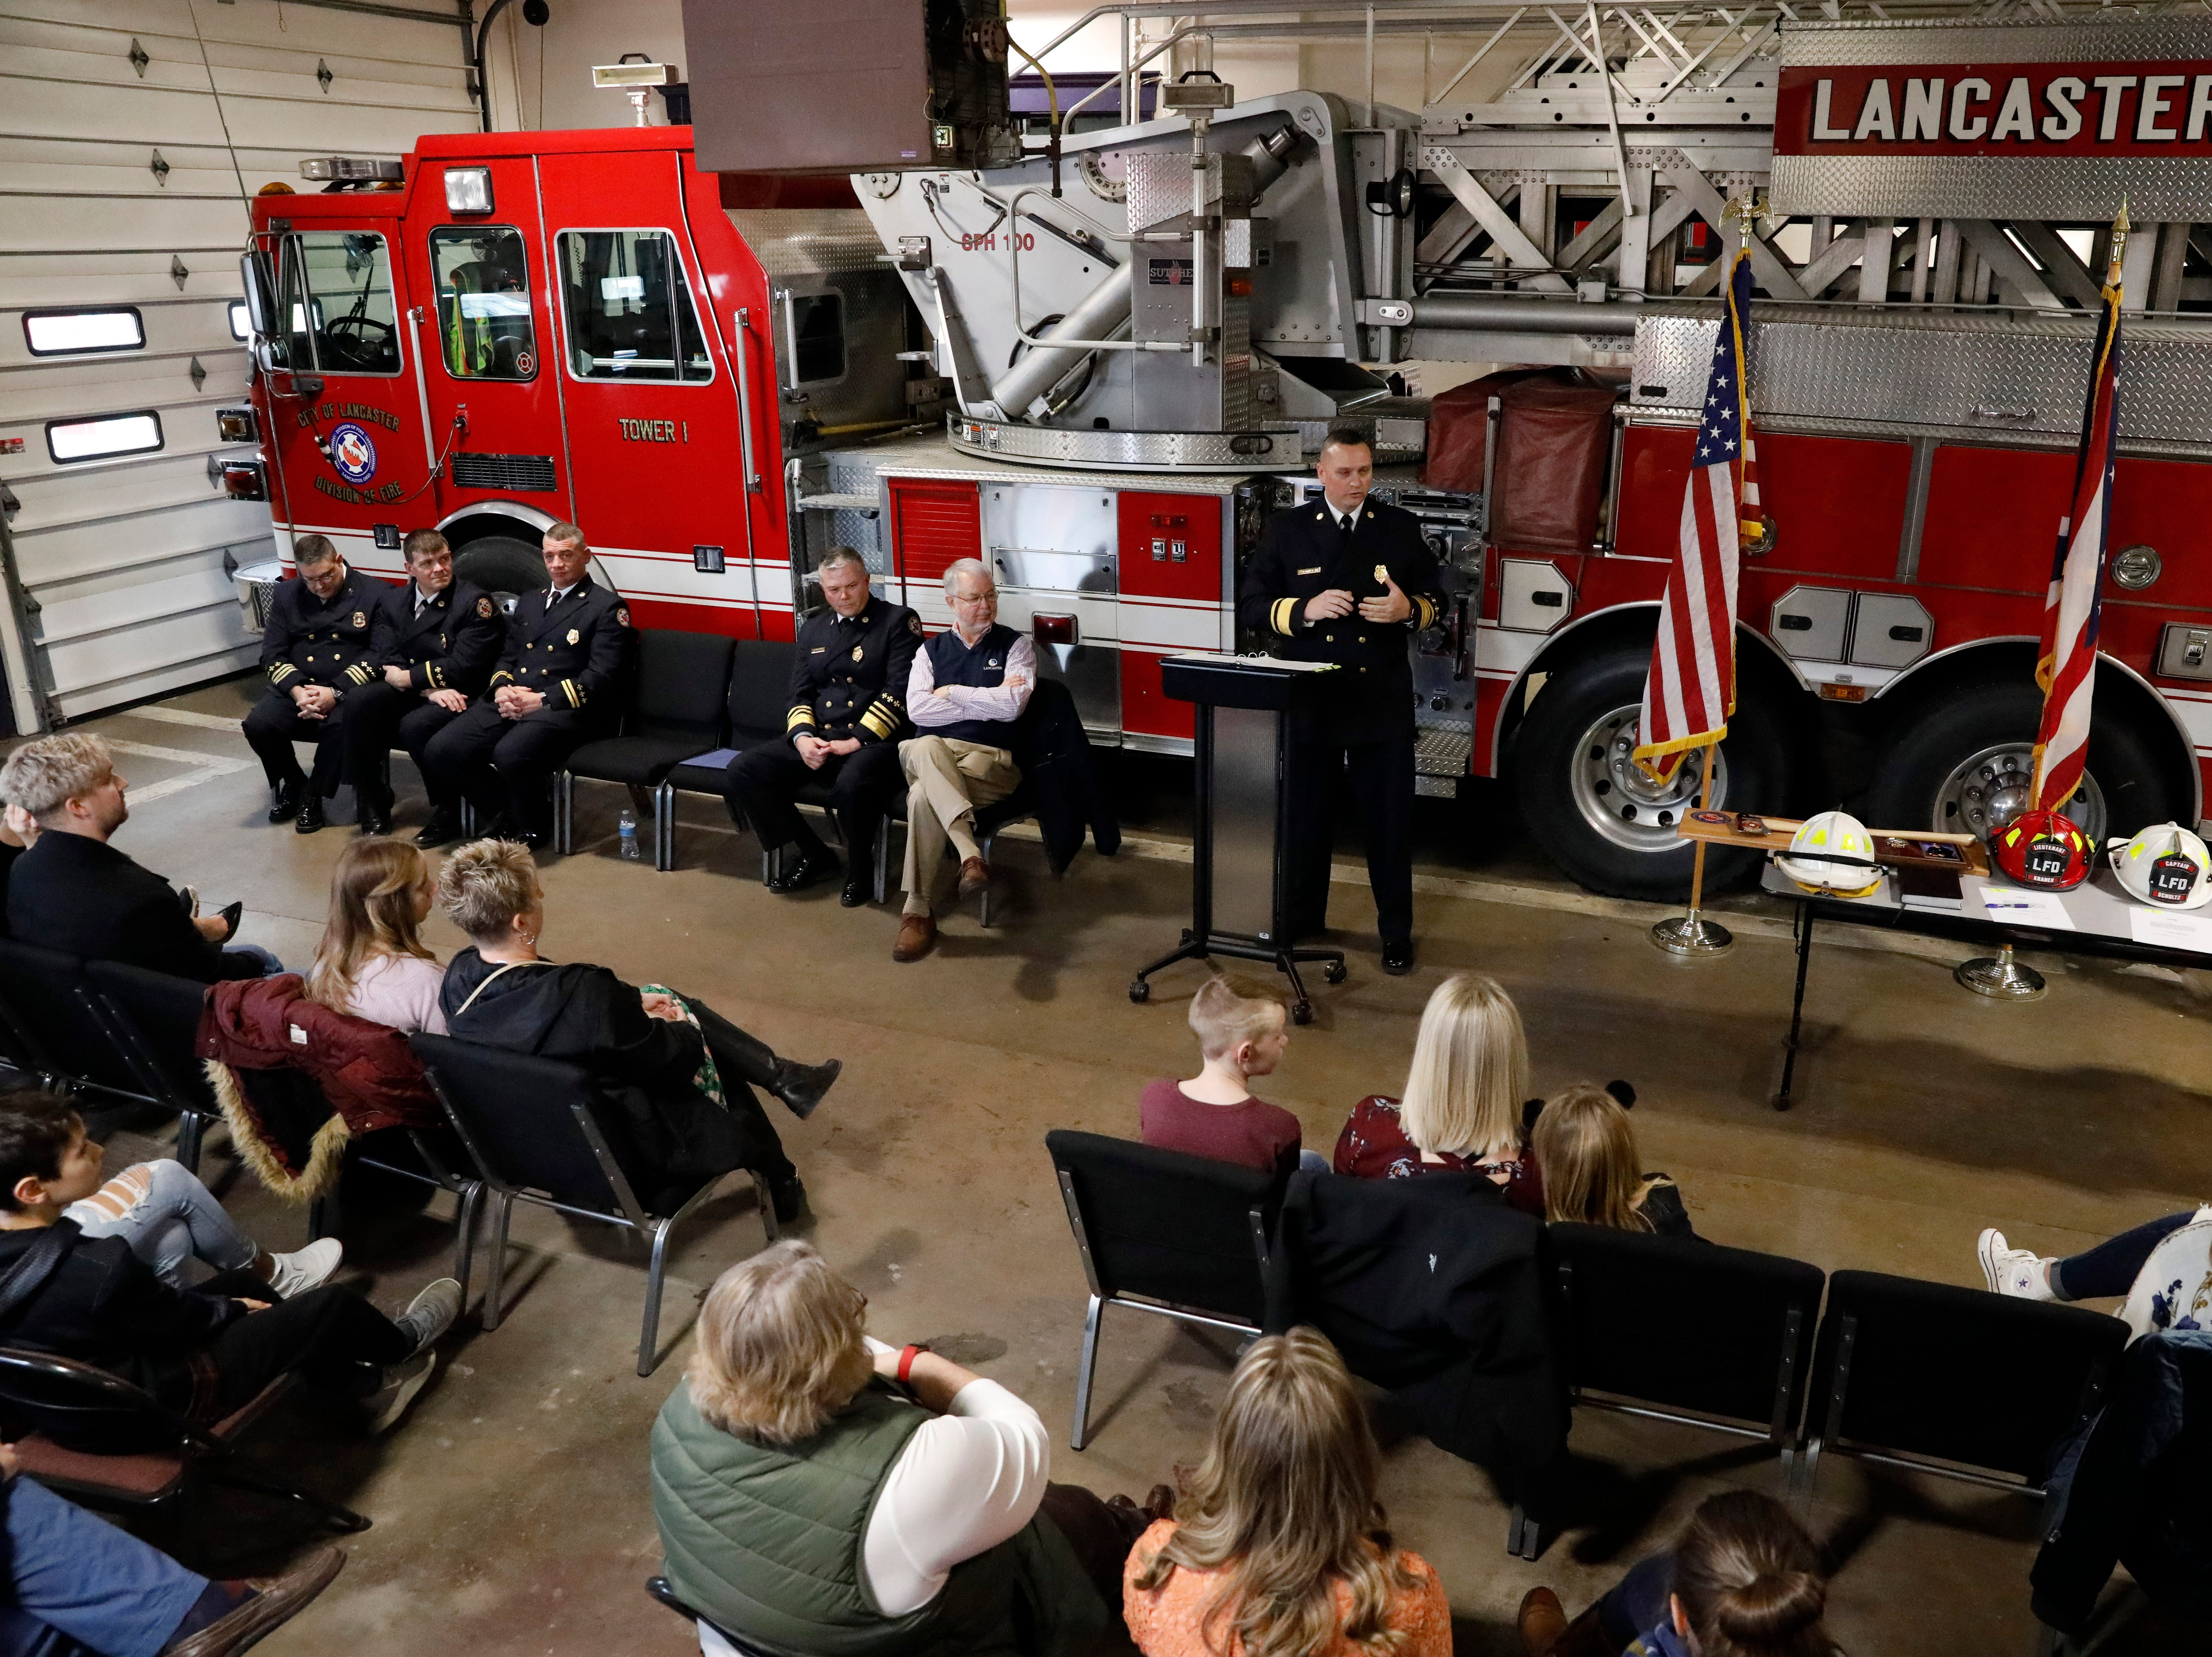 Newly sworn in Assistant Fire Chief K.J. Watts speaks to a crowd gathered in the truck bay of Engine House One Friday afternoon, Feb. 15, 2019, in Lancaster. Watts. Capt. Slade Schultz and Lt. Jeremy Kraner were sworn into their new ranks following the retirement of Assistant Chief Jack Mattlin.